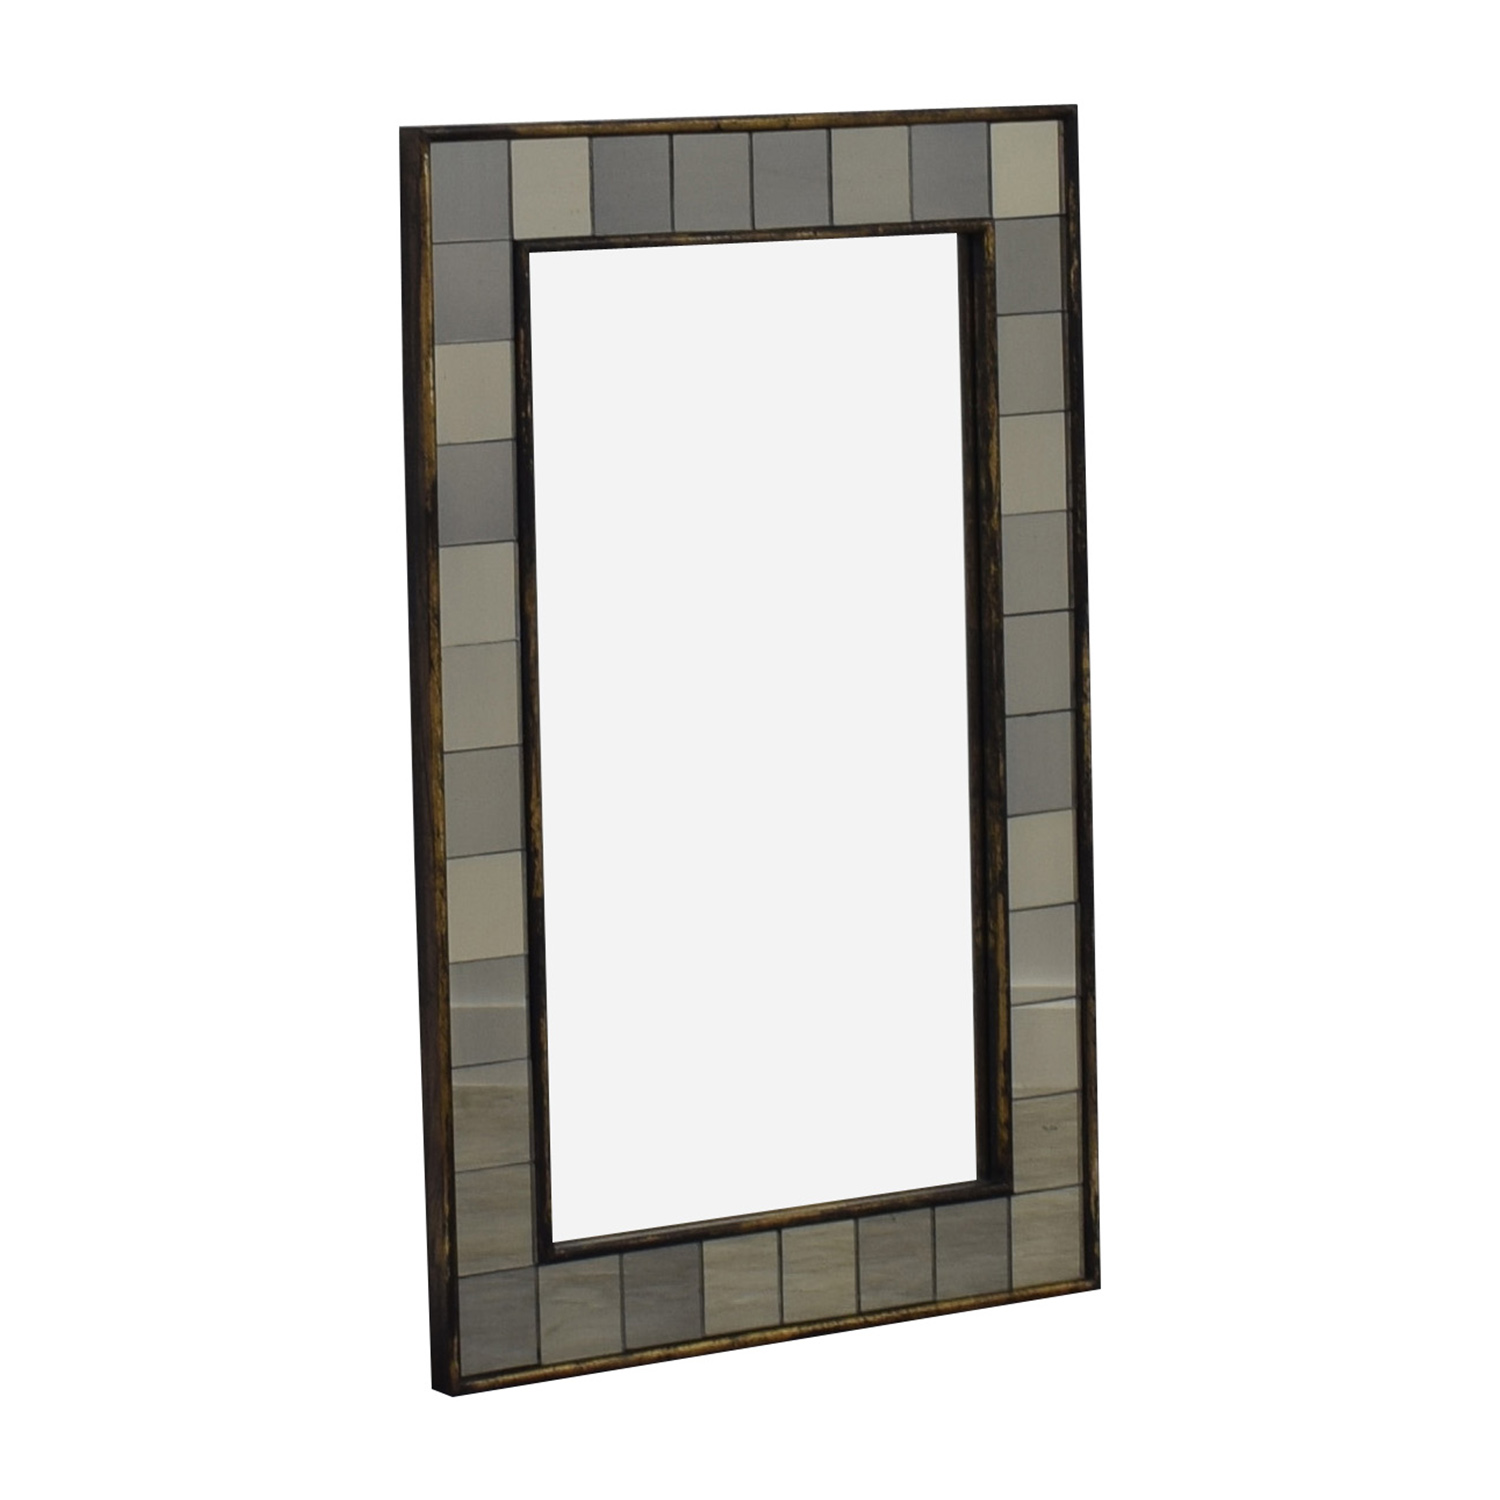 West Elm West Elm Antique Tiled Mirror discount